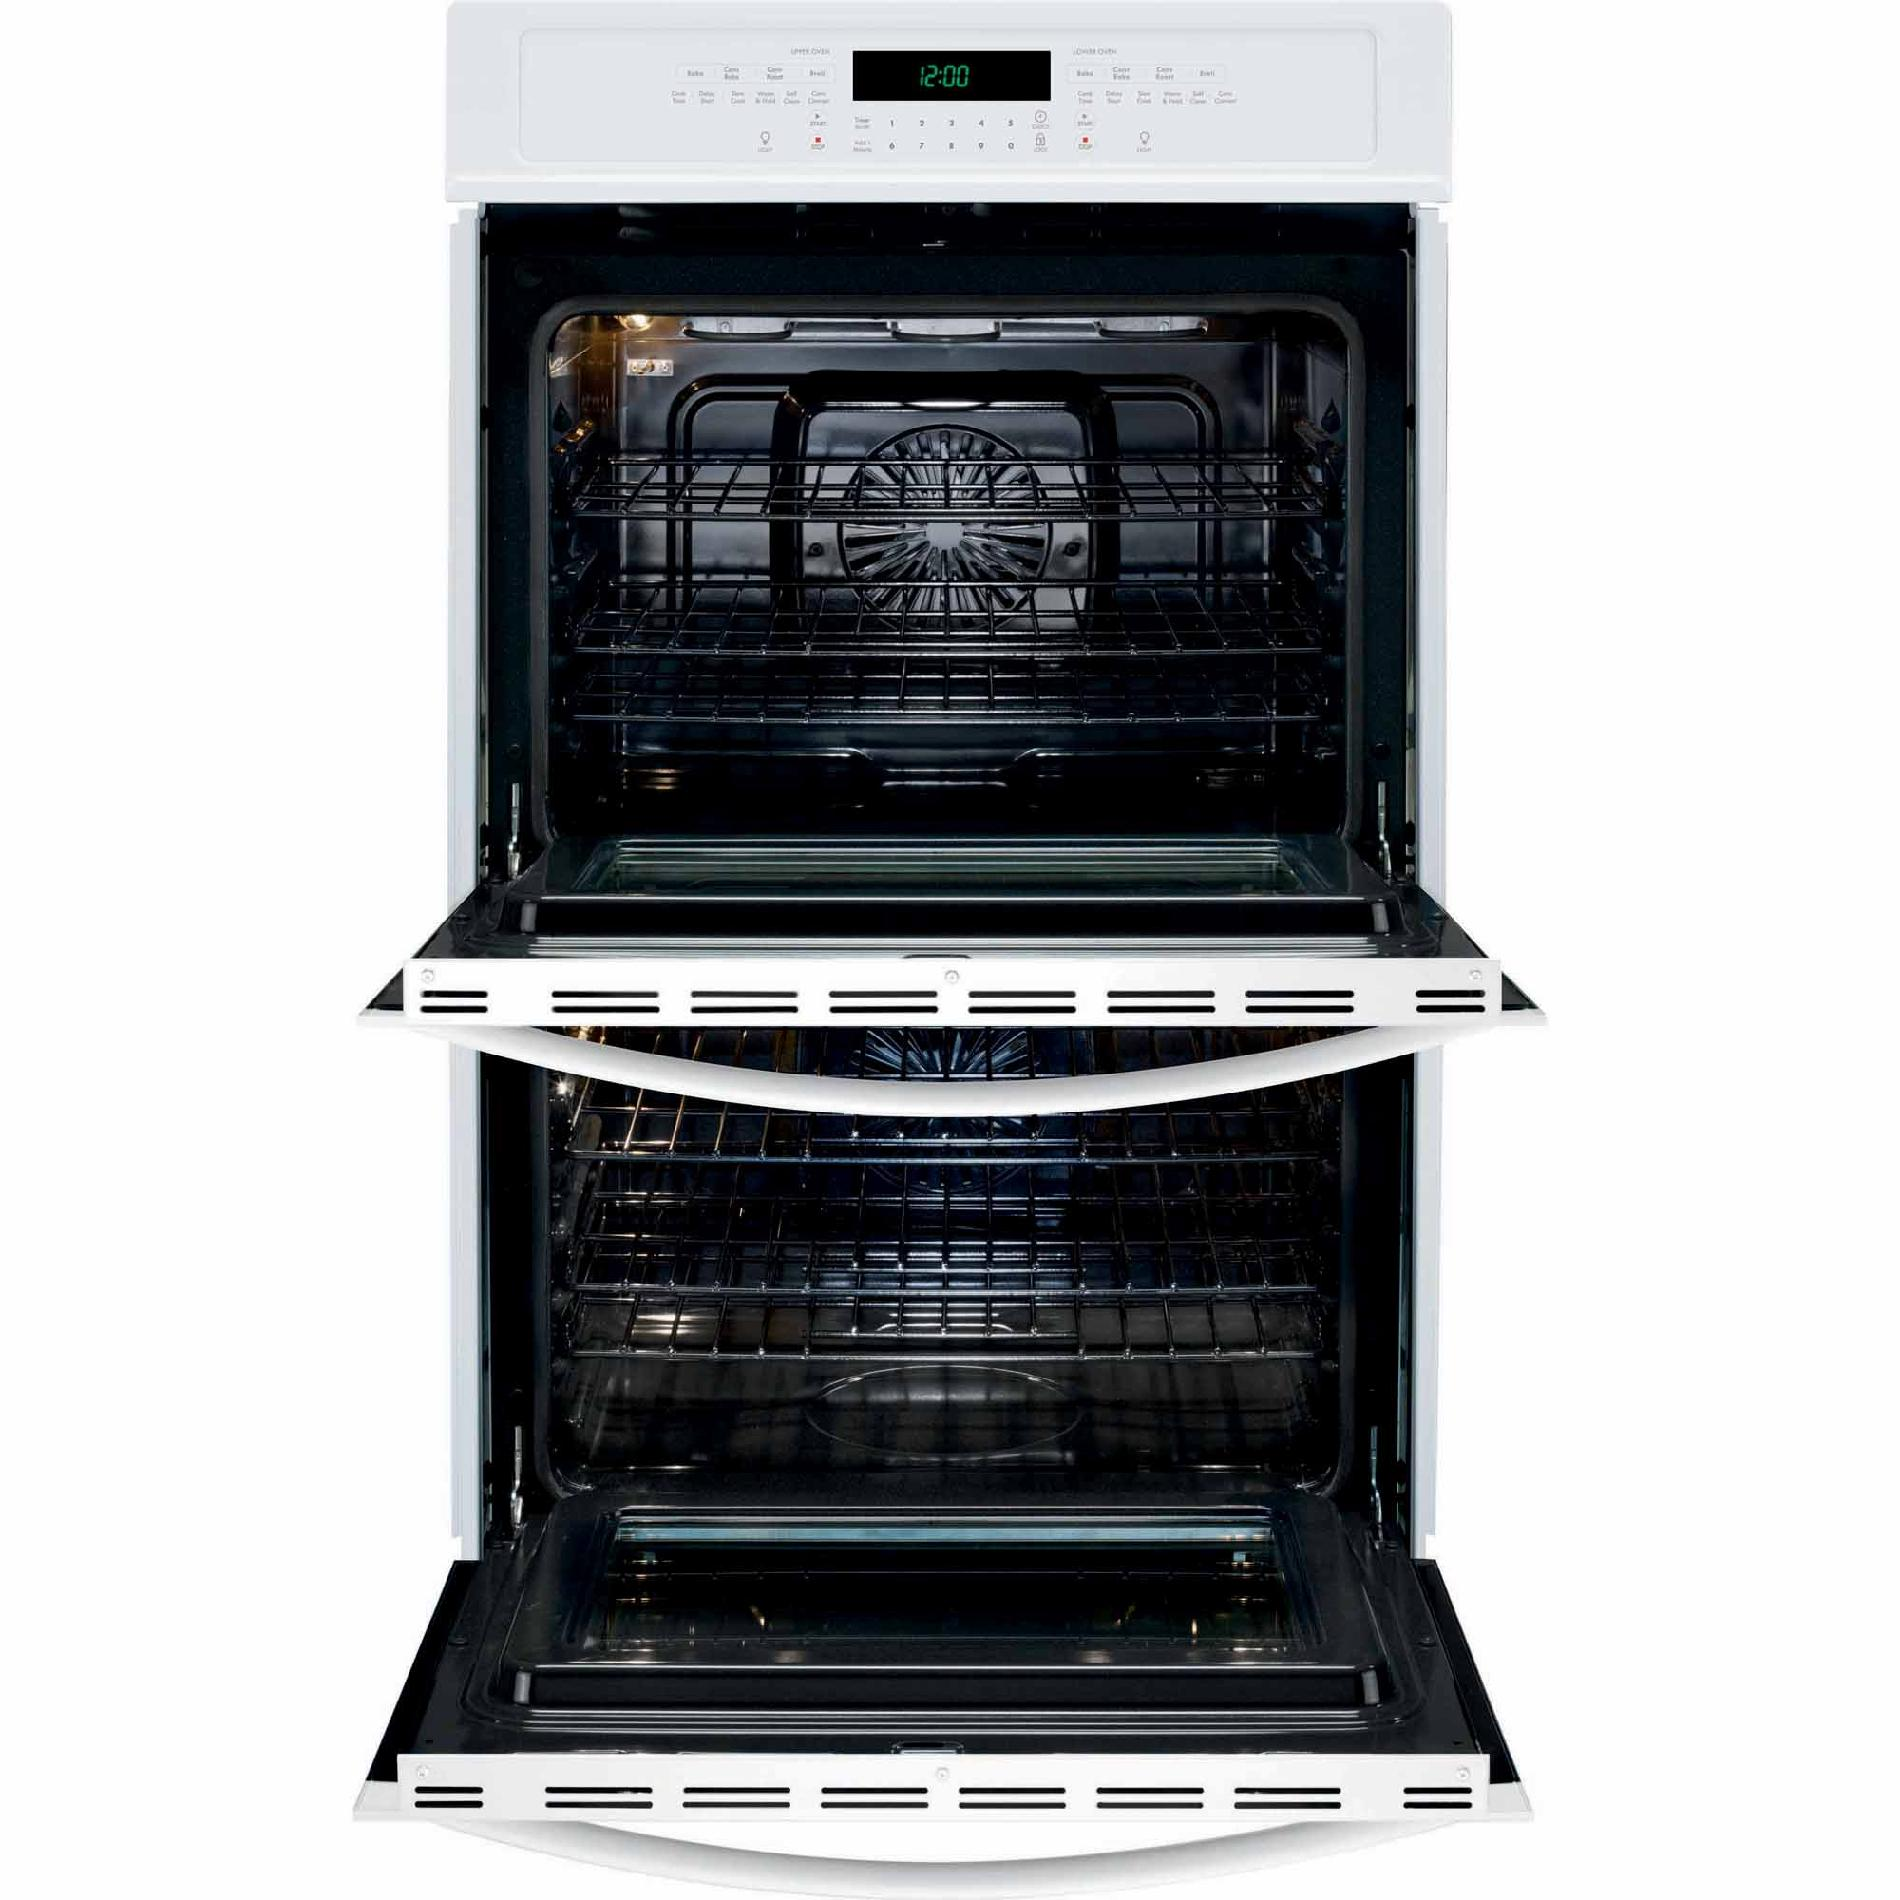 "Kenmore 49522 27"" Self-Clean Double Electric Wall Oven - White"